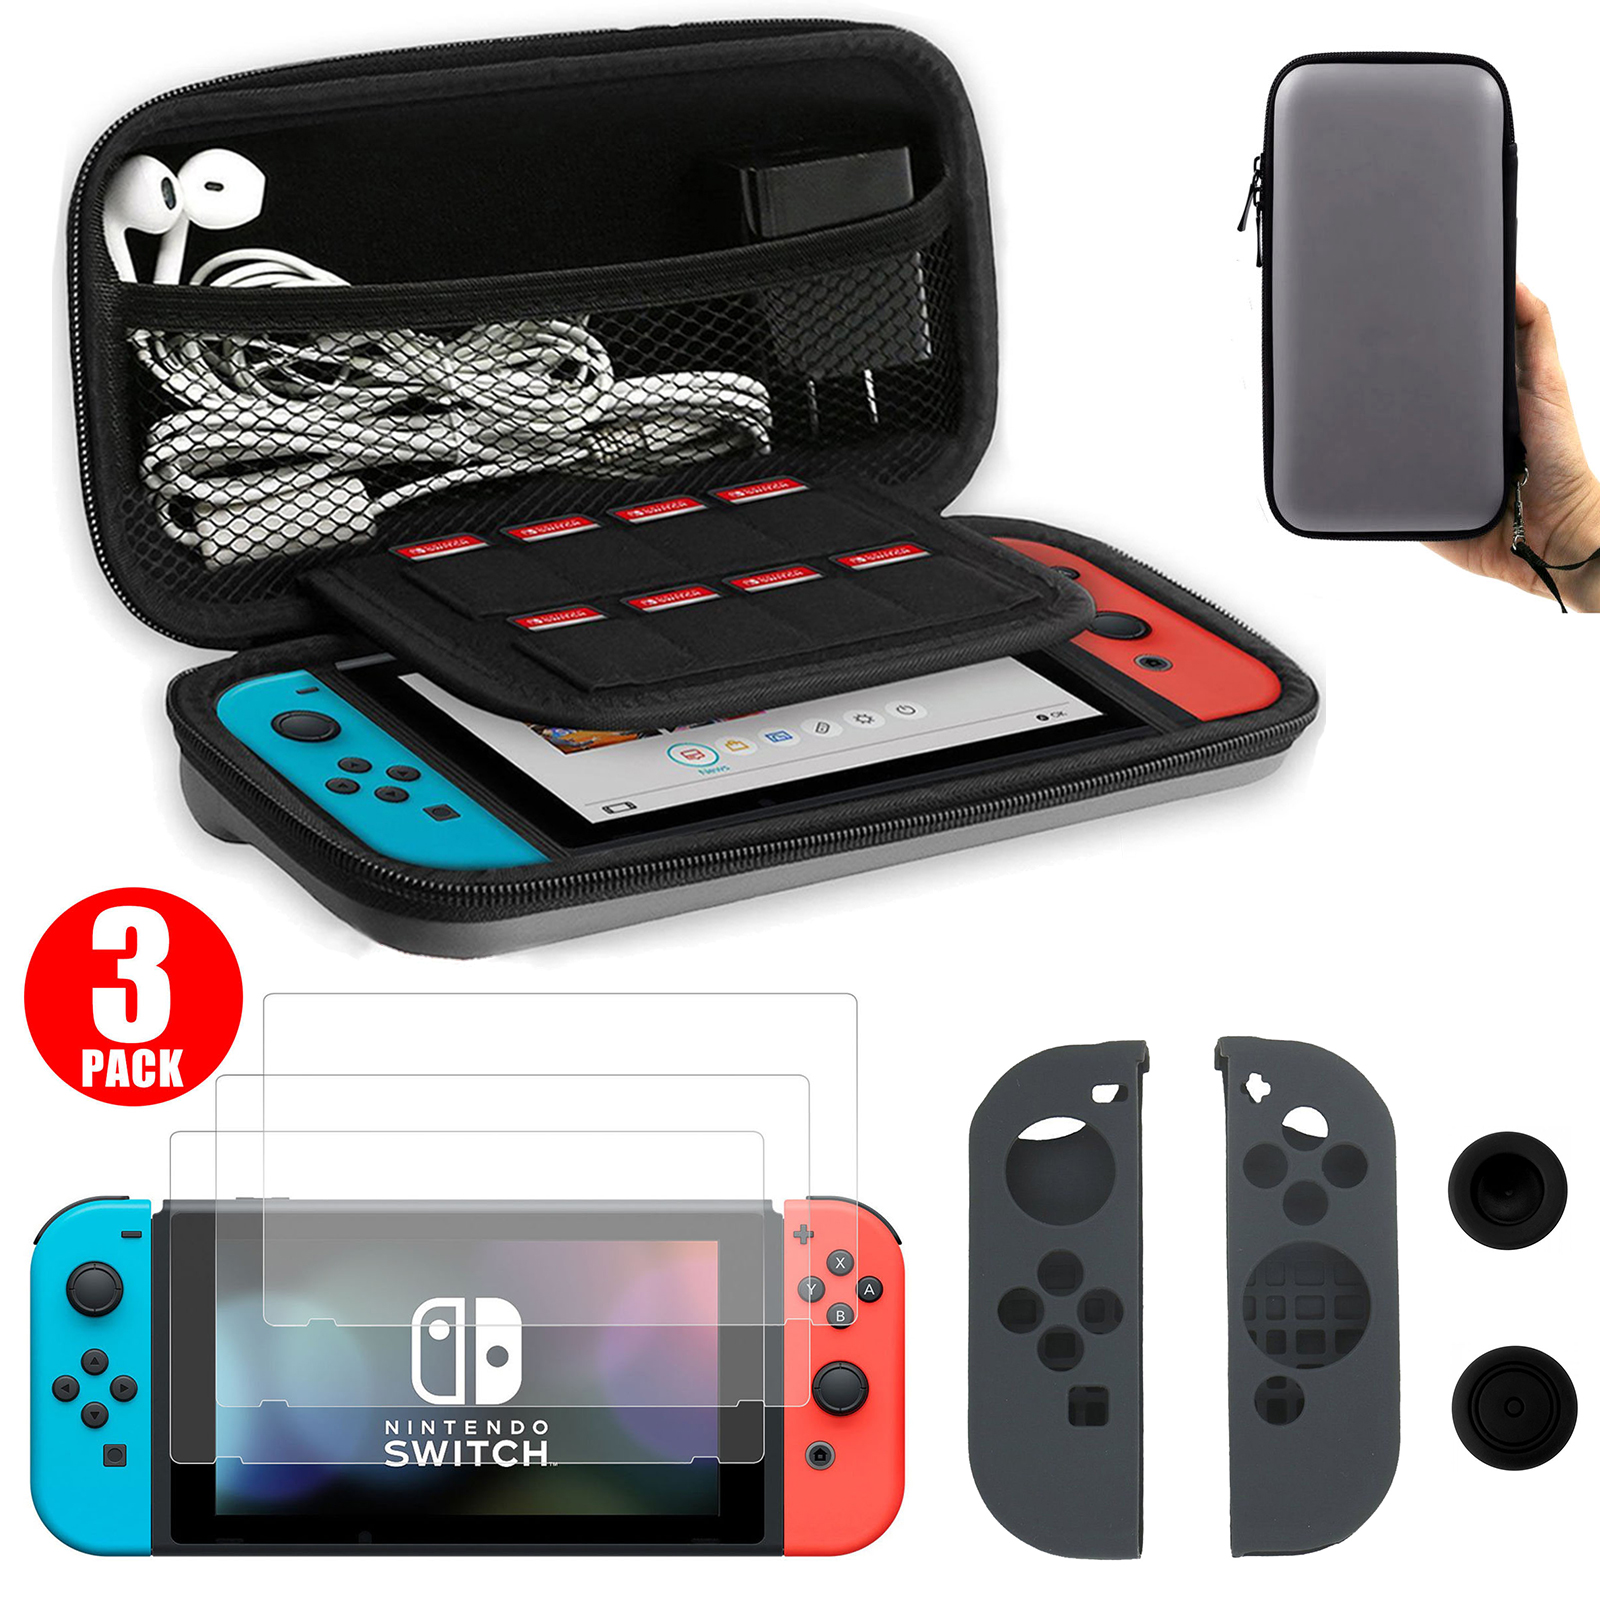 EEEKit 3in1 Protector Kit for Nintendo Switch, Carrying Travel Case Game Card Storage Bag, Joy Con Silicone Cover,3 Pack